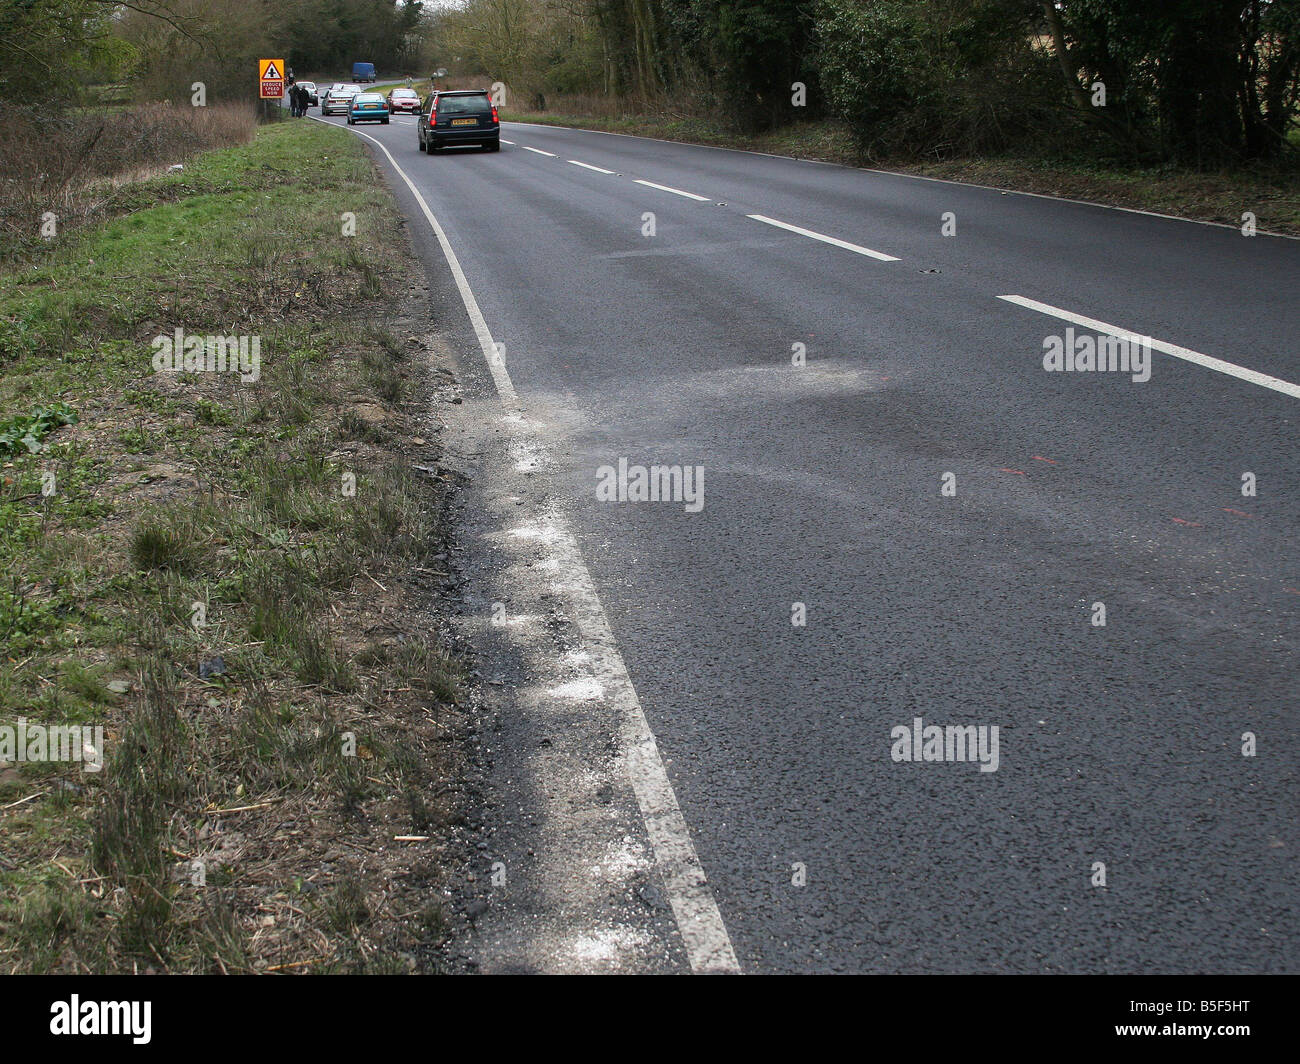 The scene of the accident with debris visible - Stock Image